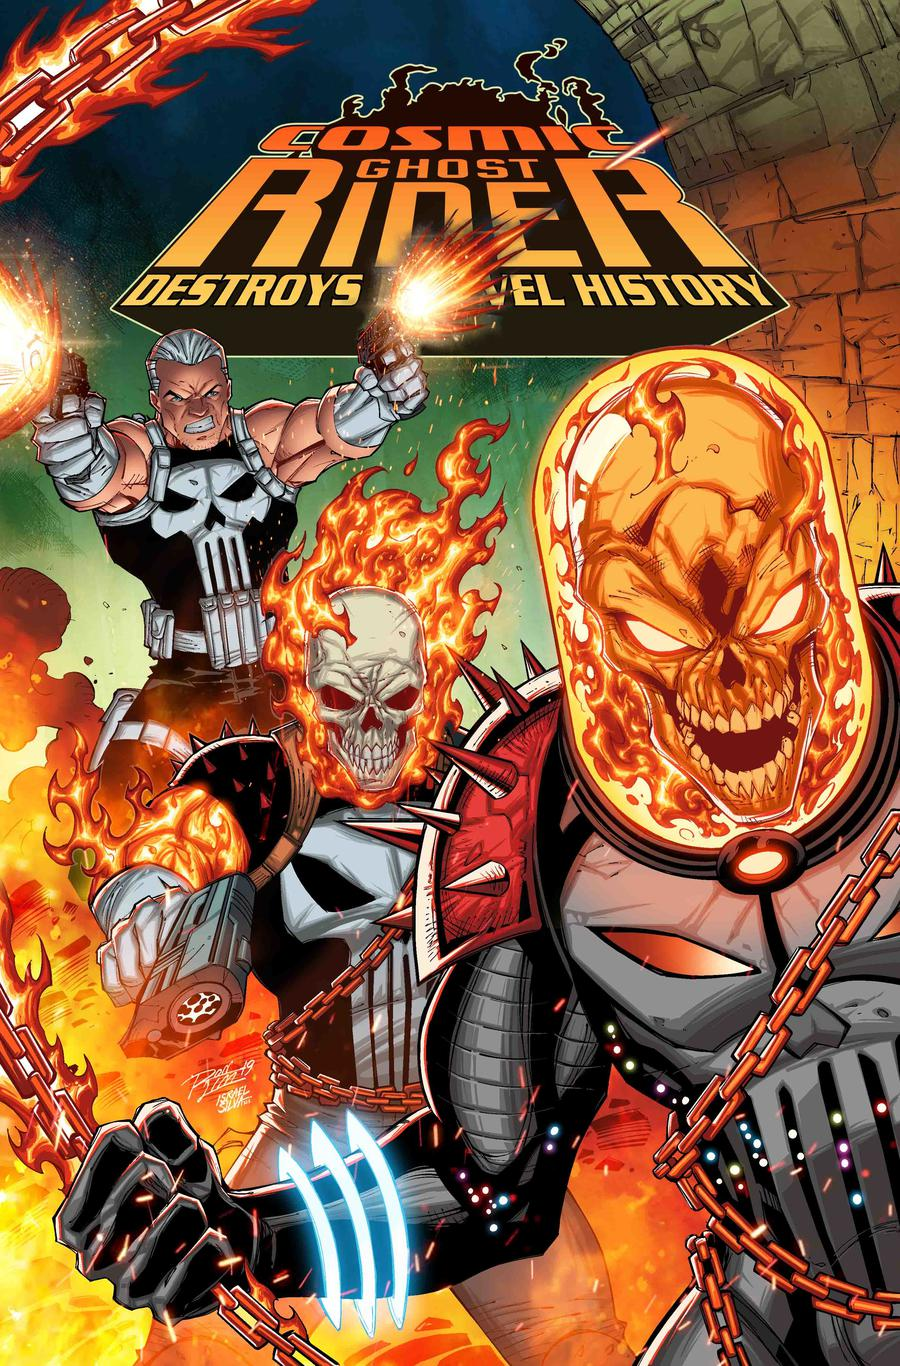 The Long Boxers - Cosmic Ghost Rider Destroys Marvel History